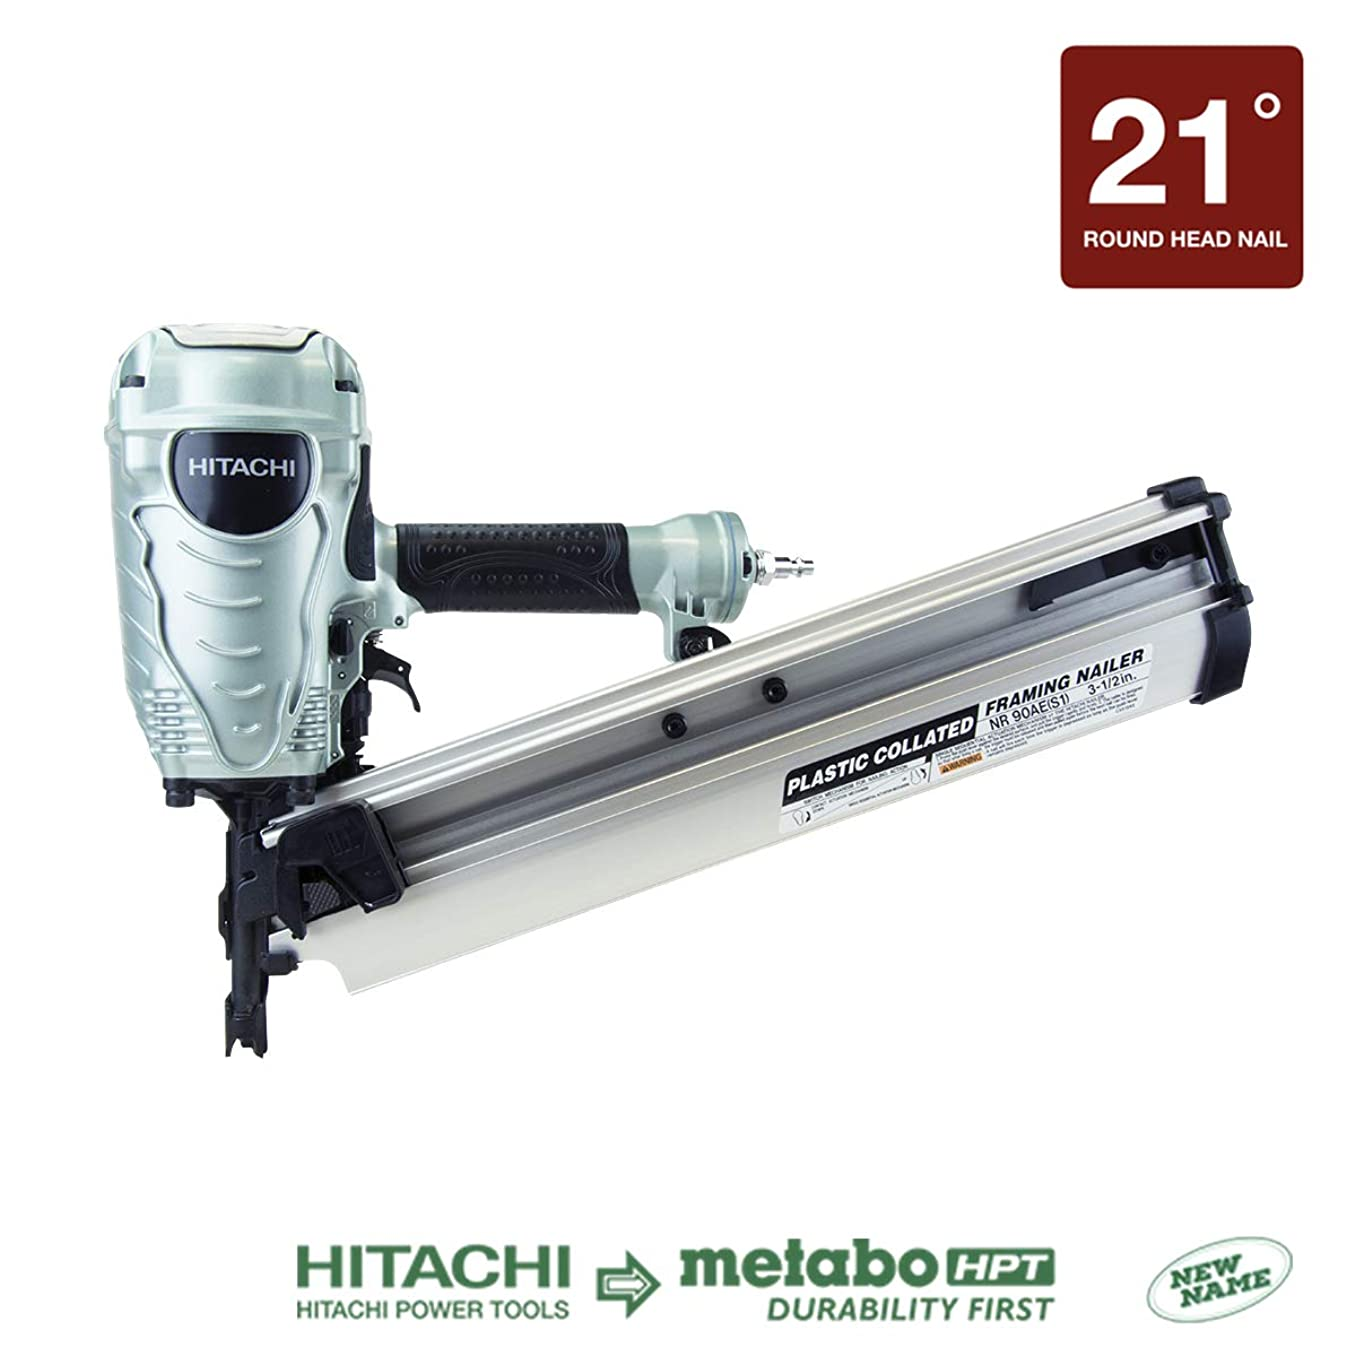 Hitachi NR90AES1 Framing Nailer, 2-Inch to 3-1/2-Inch Plastic Collated Full Head Nails, 21 Degree Pneumatic, Selective Actuation Switch, 5-Year Warranty (Discontinued by the Manufacturer)